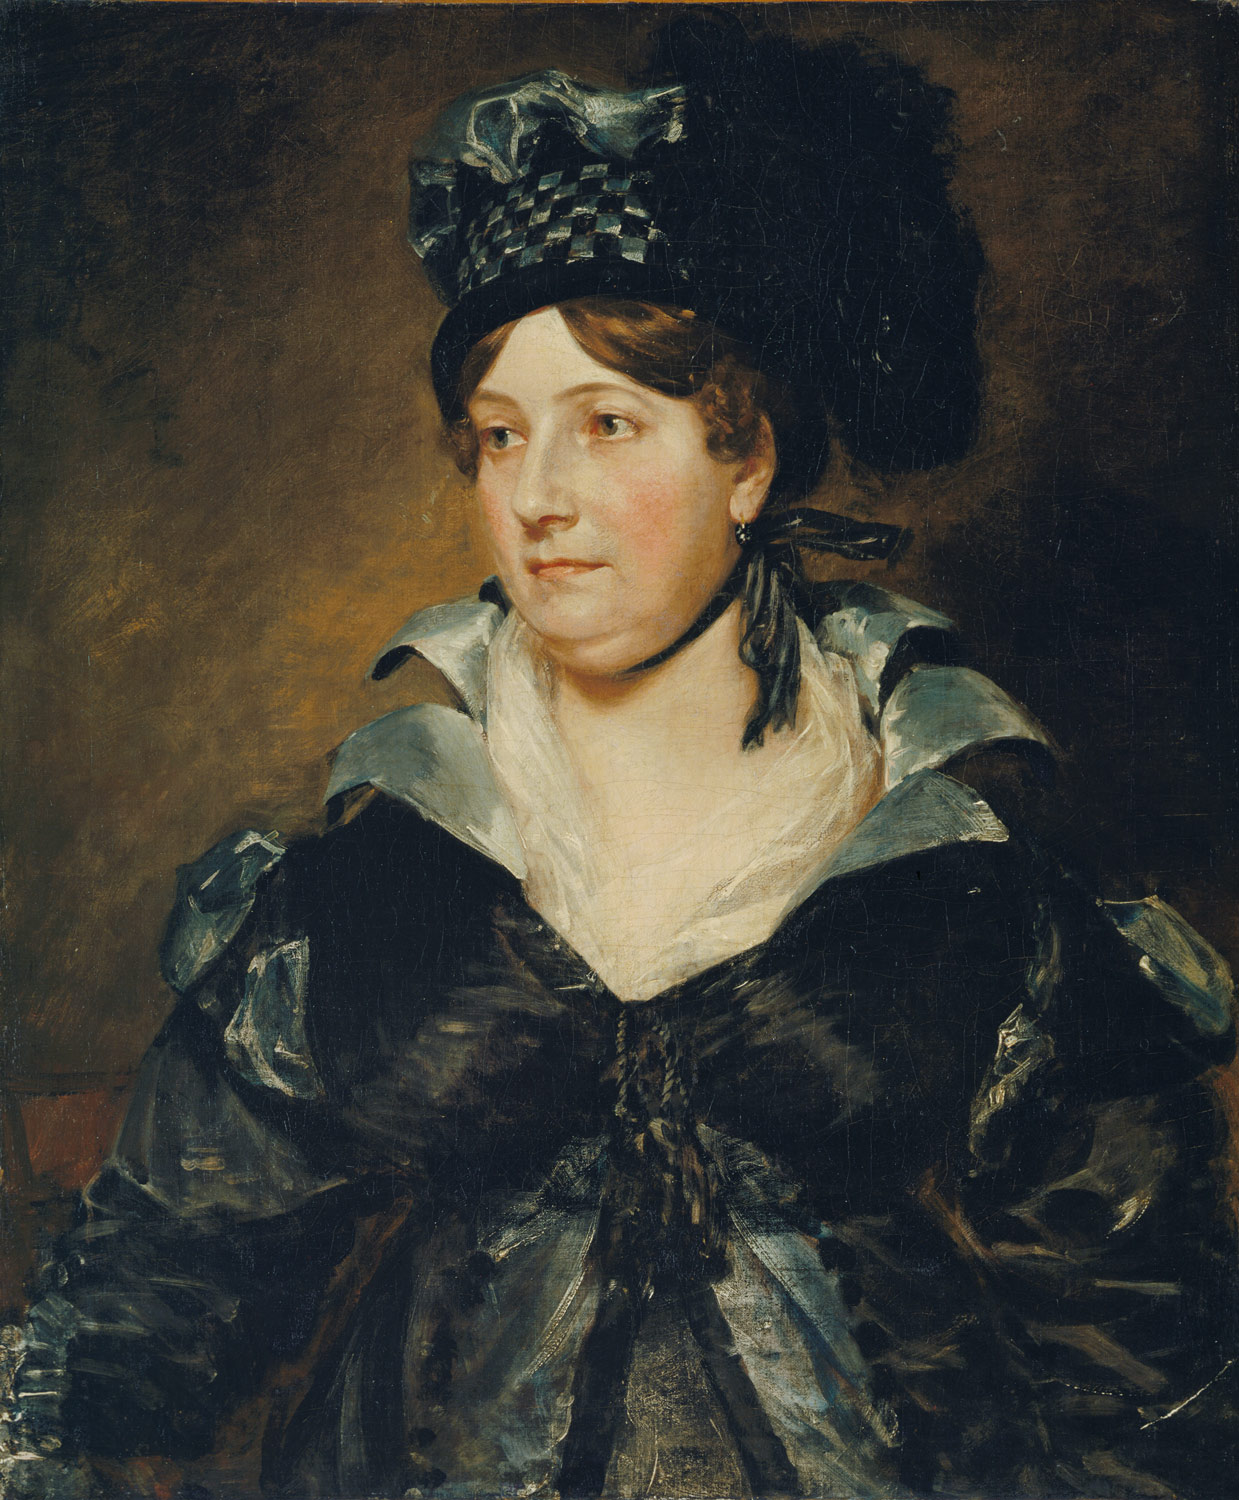 Mrs. James Pulham Sr. (Frances Amys, born about 1766, died 1856)